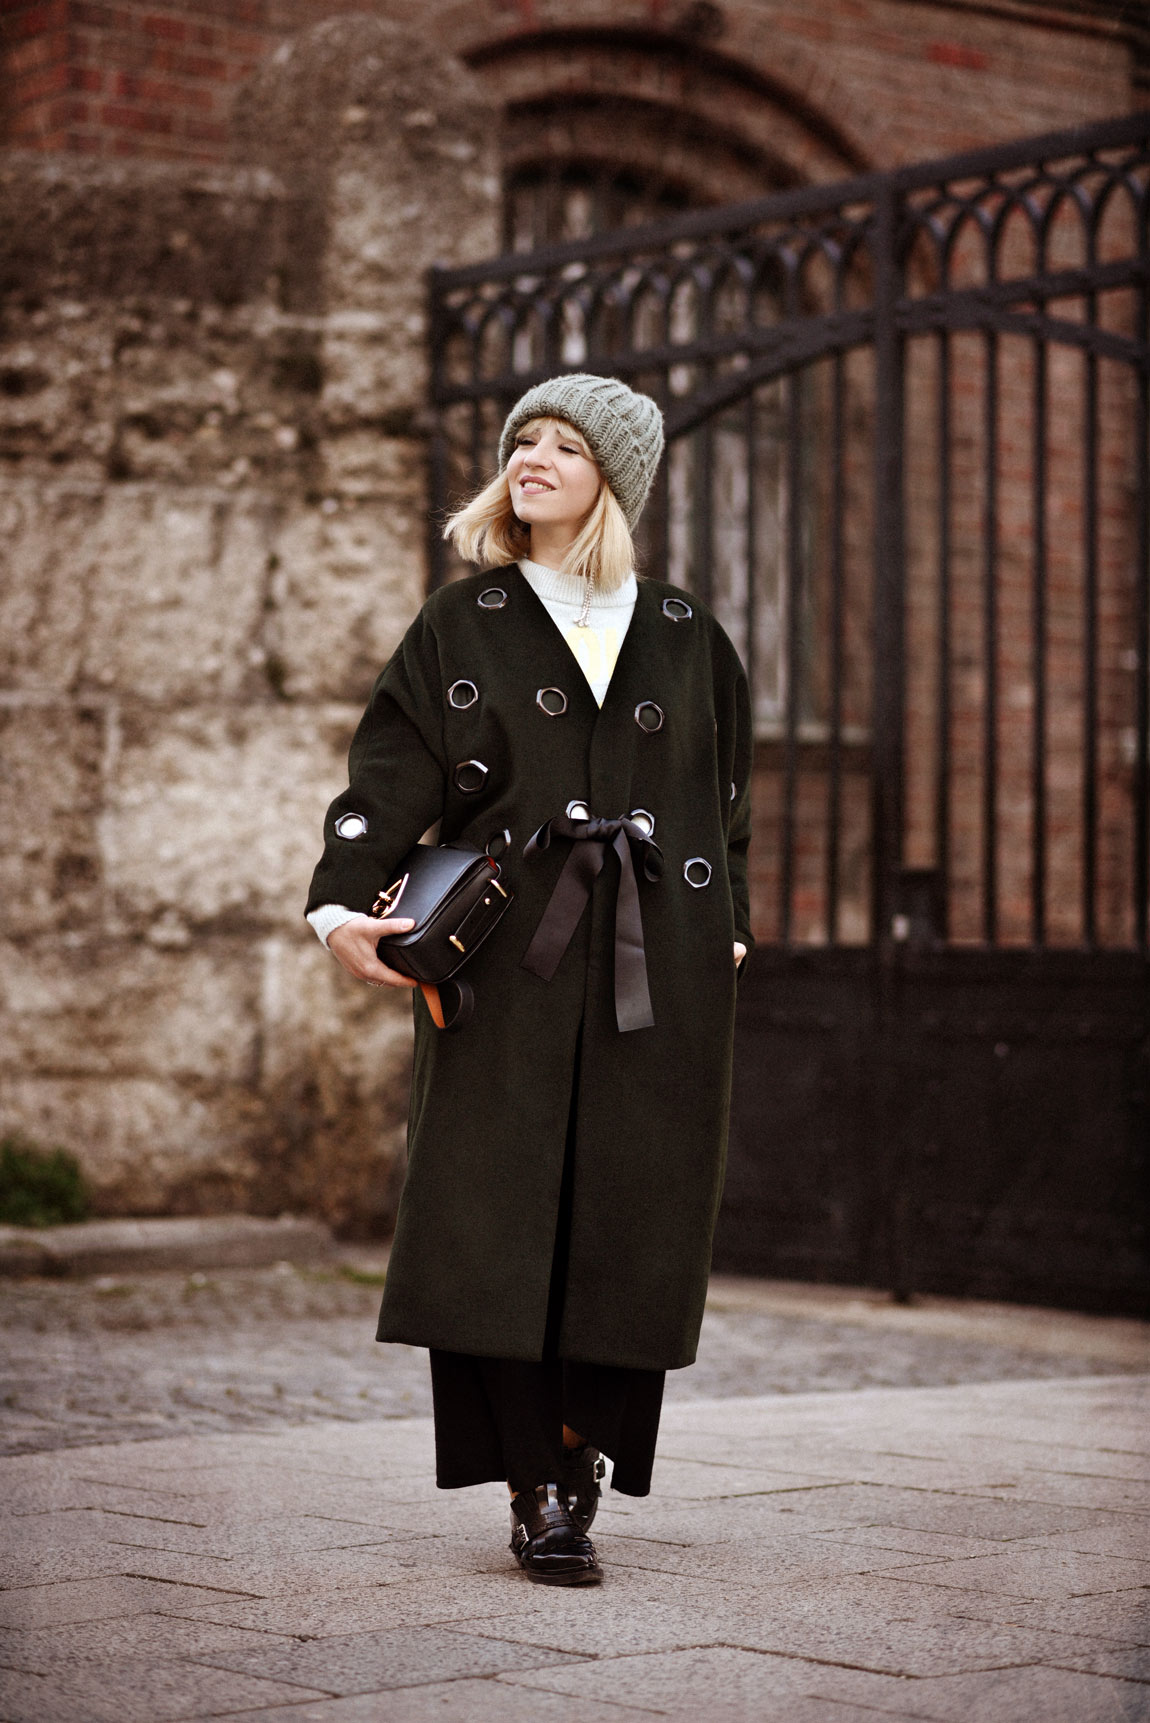 asos, mantel, white, gruen, asseenonme, coat, fashionblogger, modeblogger, münchen, berlin,winter, ootd, streetstyle, styleblog, outfit, inspiration, look